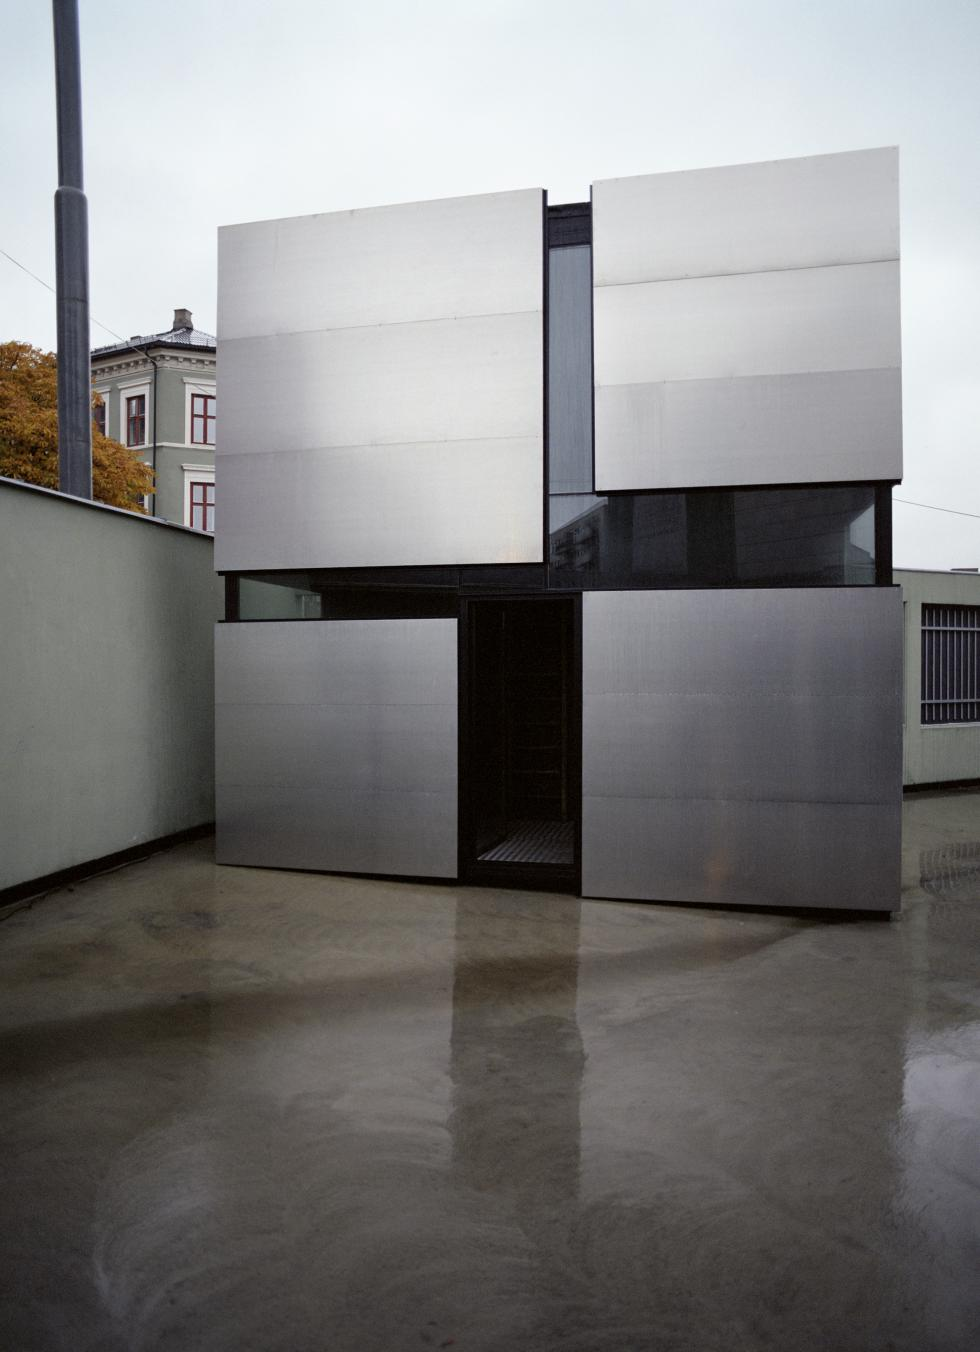 Silver paneled facade with 4 squares separated by black glass.